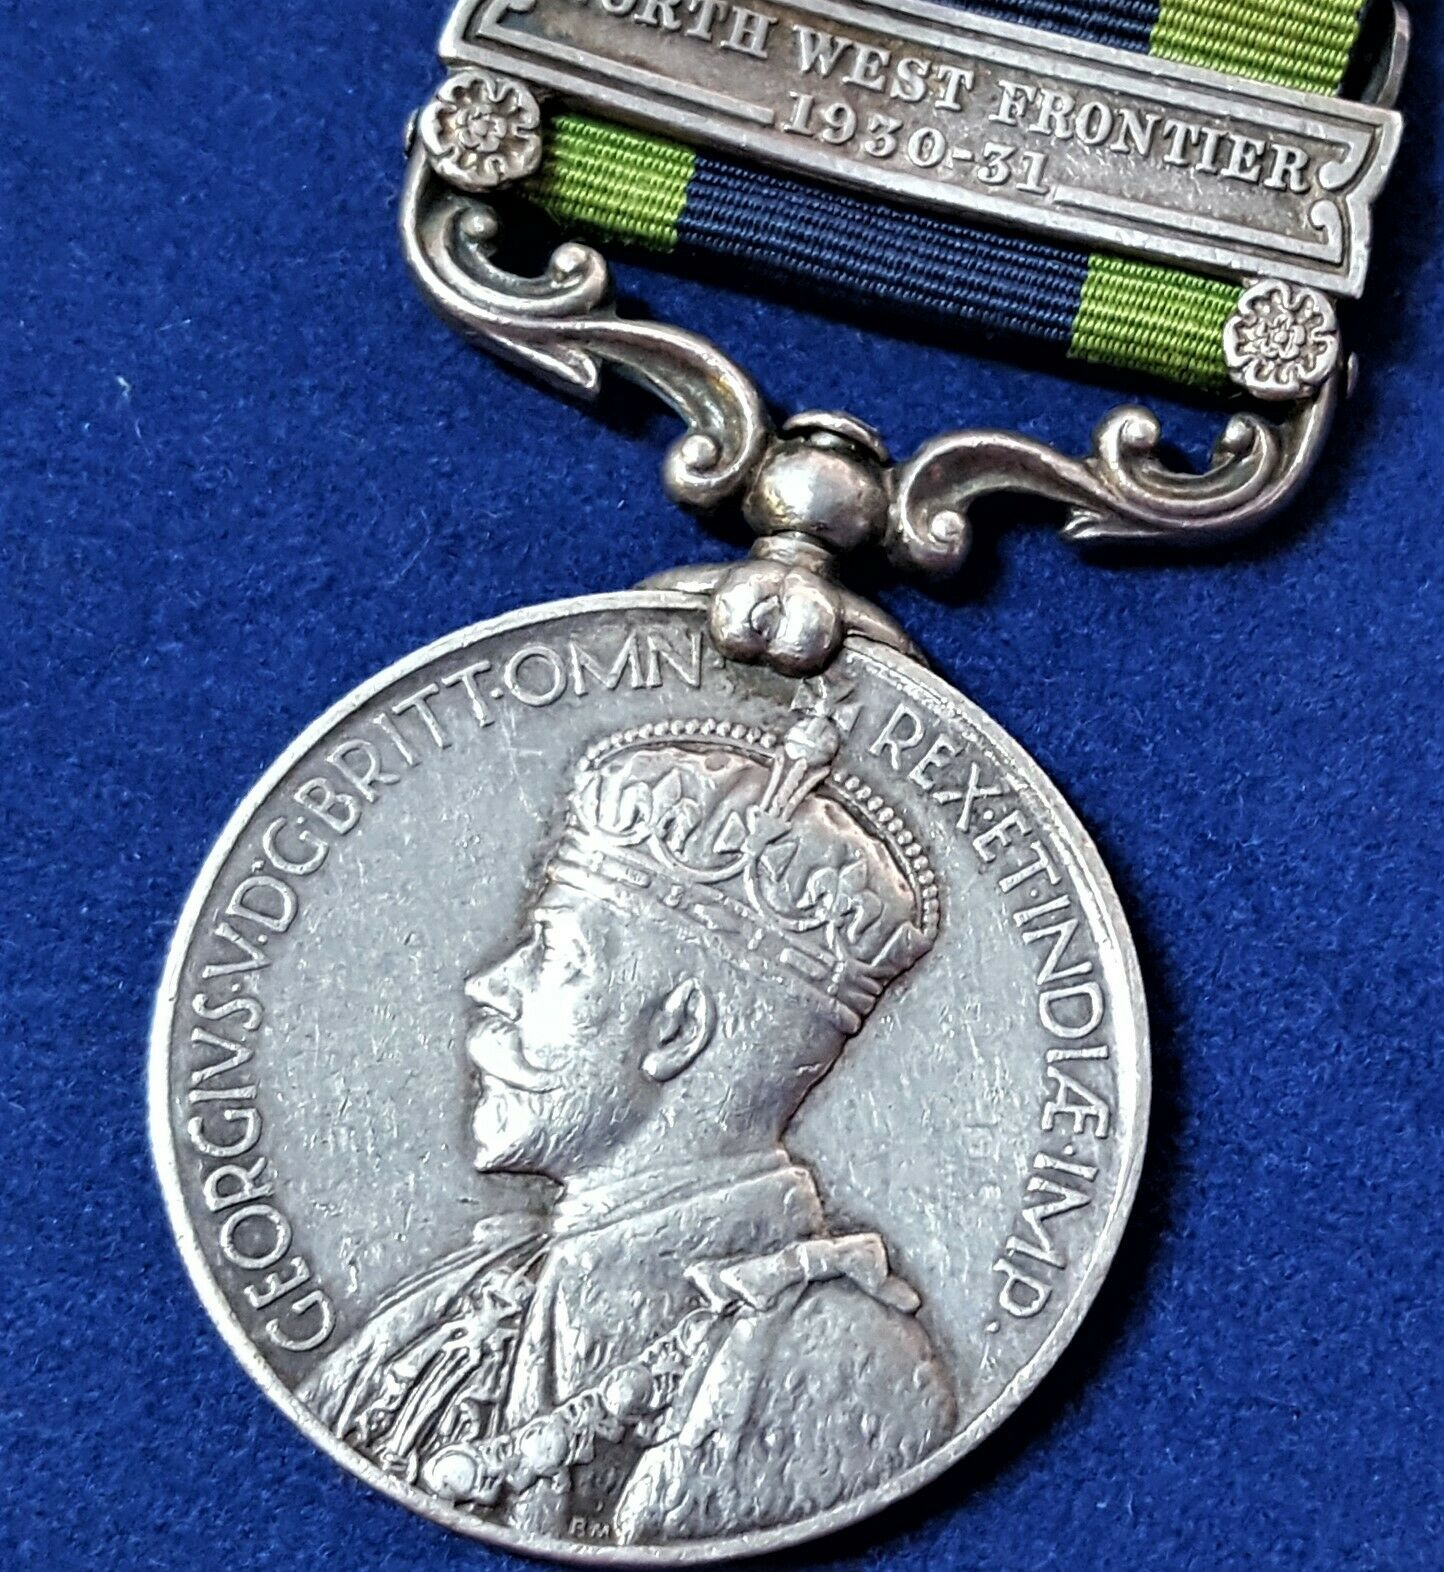 N.W. FRONTIER BRITISH INDIA GENERAL SERVICE MEDAL WW2, 6TH BATTALION, 13th FRONTIER FORCE RIFLES